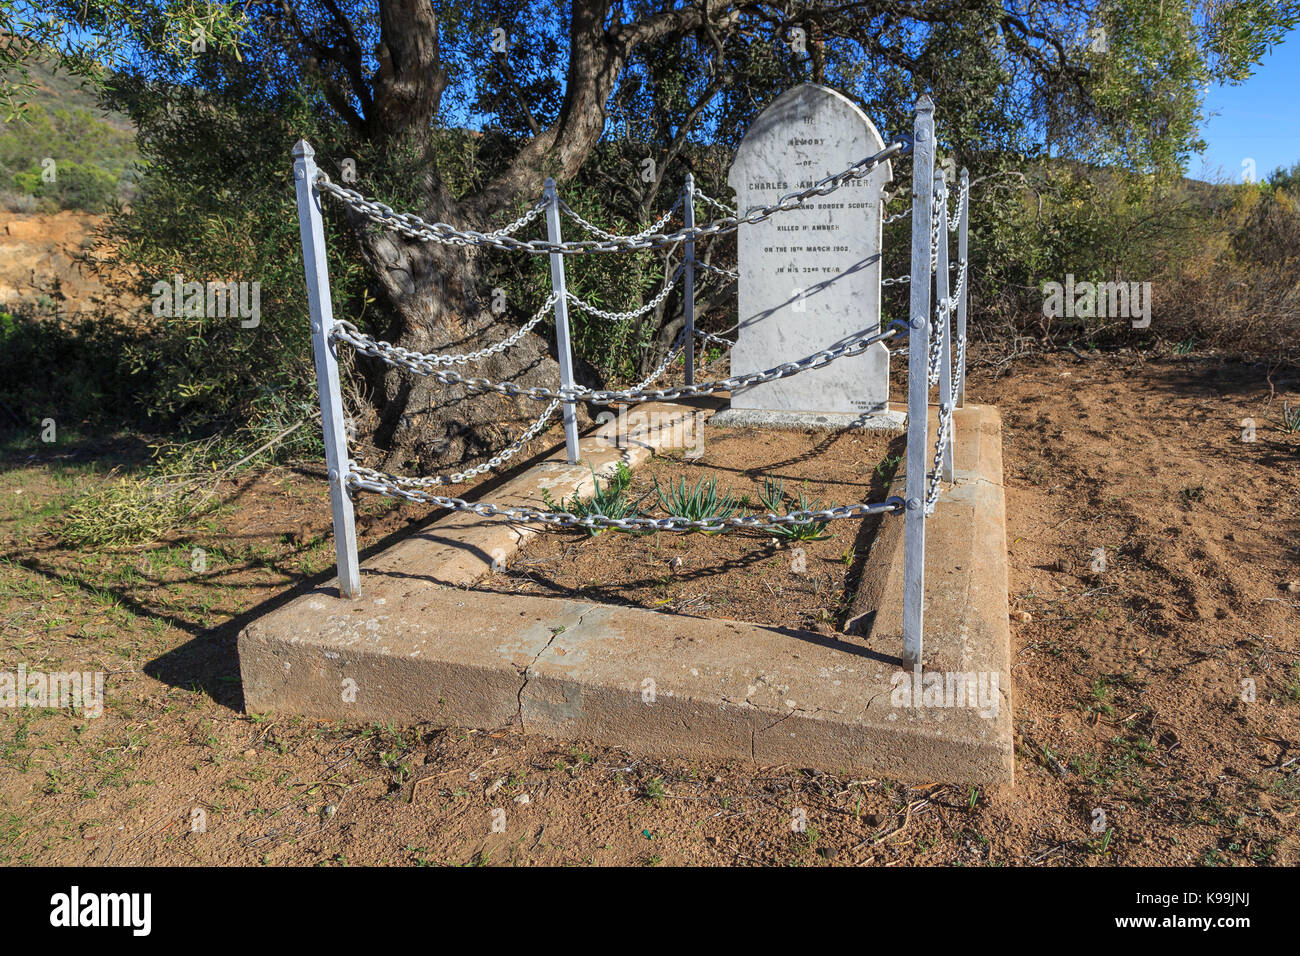 The grave of Charles James Darter, of the British Army.  Darter was killed in an ambush during the Boer War in 1902. - Stock Image